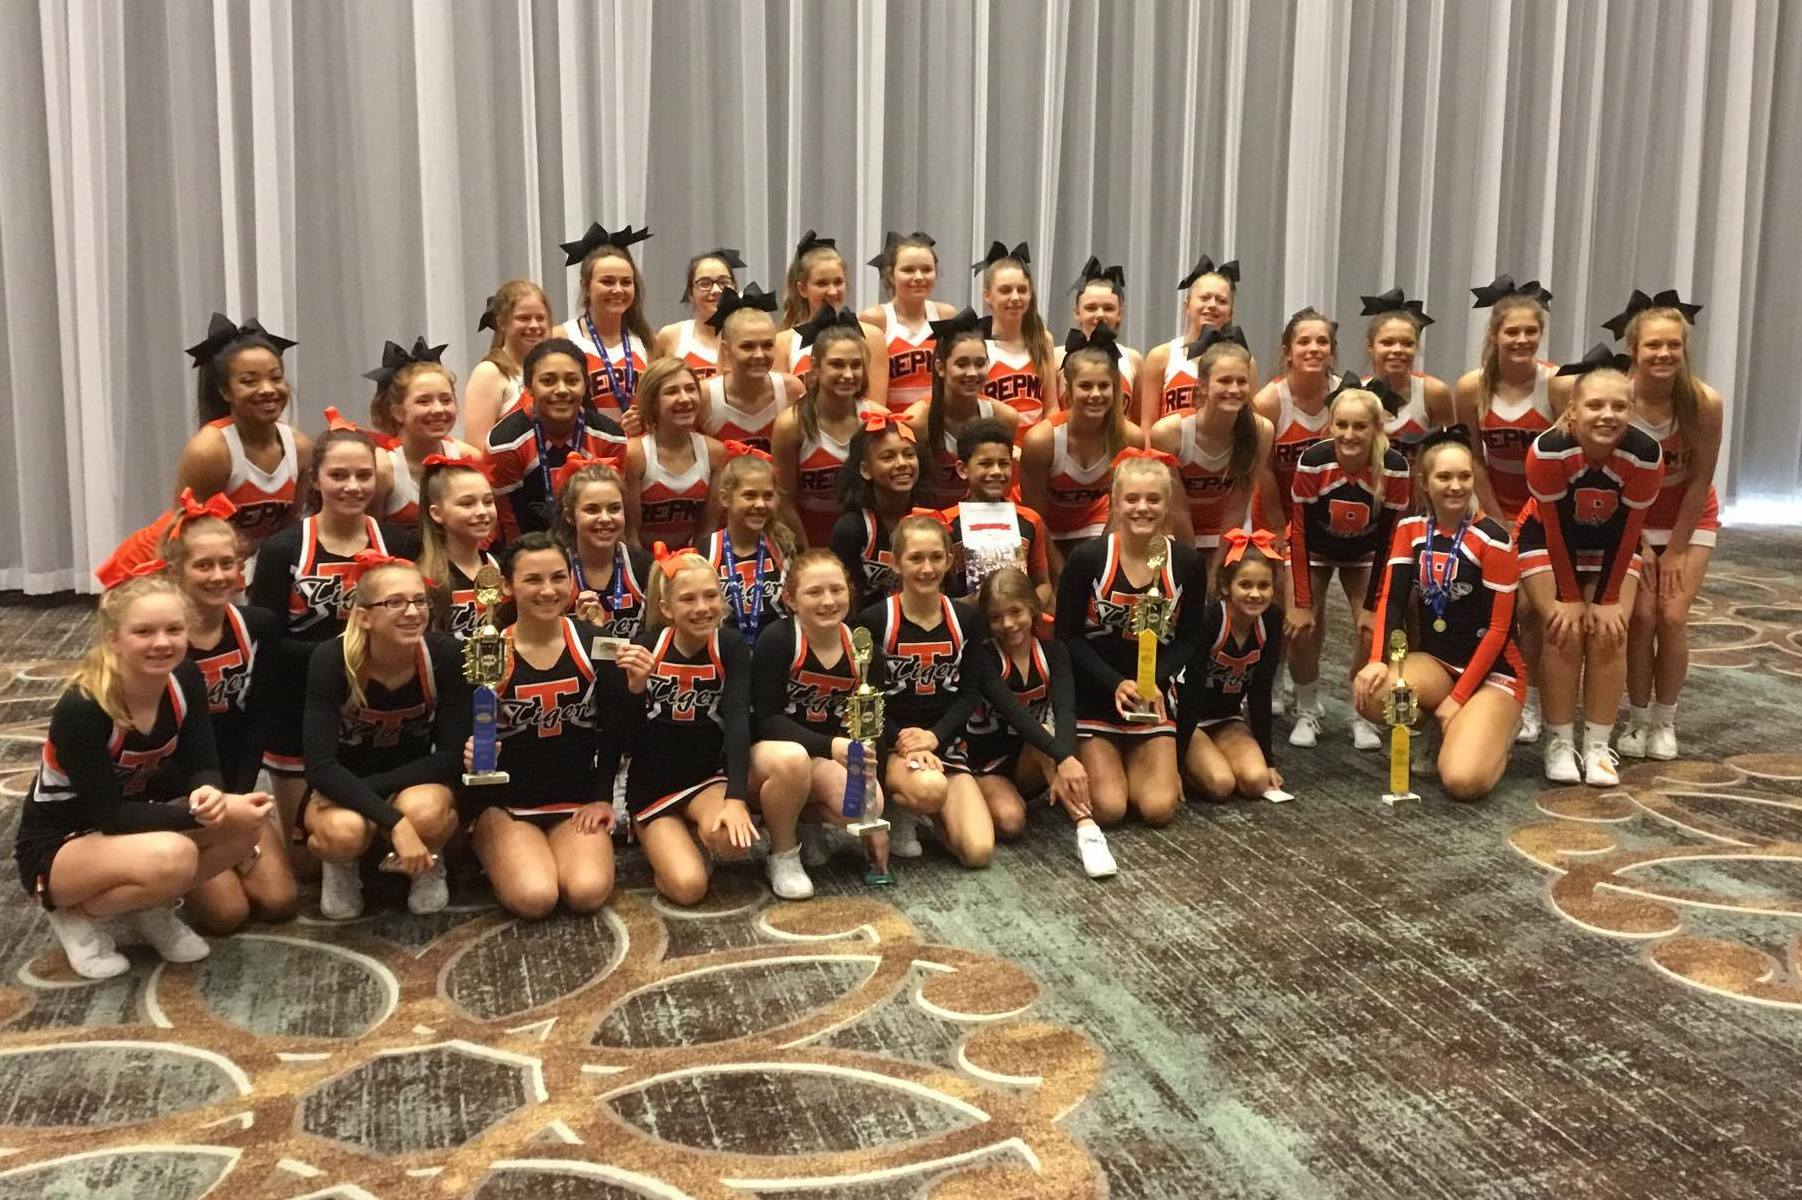 Cheer Squad Aims High For 2017-18